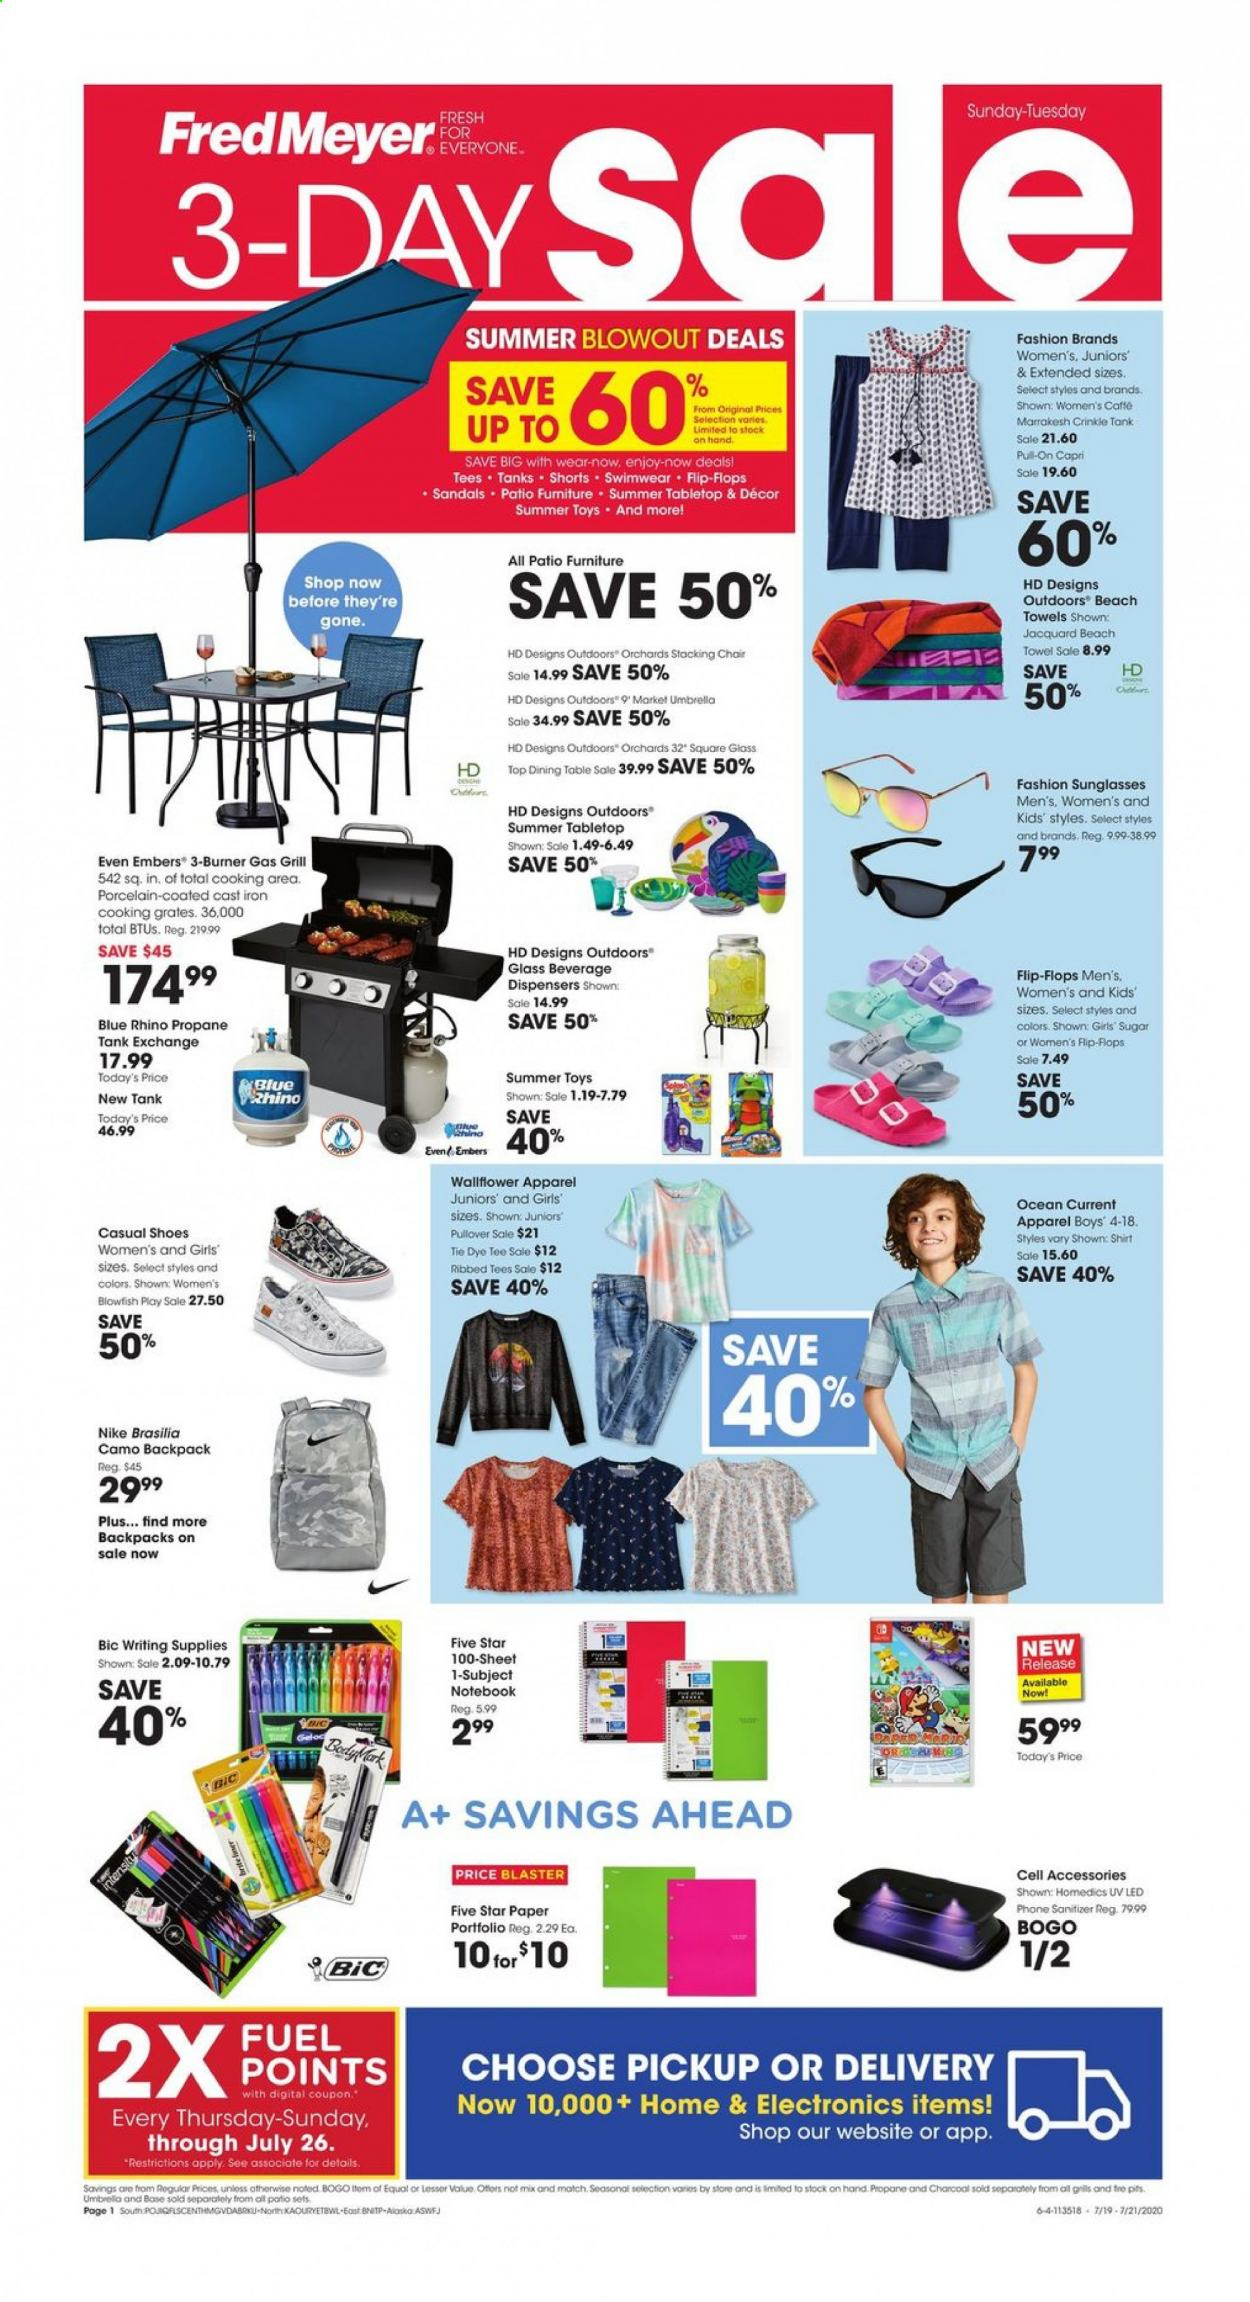 Fred Meyer Flyer - 07.19.2020 - 07.21.2020 - Sales products - apparel, backpack, bic, dining table, fuel, furniture, gas grill, grill, sandals, sheet, shirt, shoes, shorts, sugar, sunglasses, table, tee, tie, chair, iron, pullover, charcoal, patio, nike, notebook, toys, blaster, beach towel, outdoor furniture, cell accessories, cast iron, phone, rhino. Page 1.